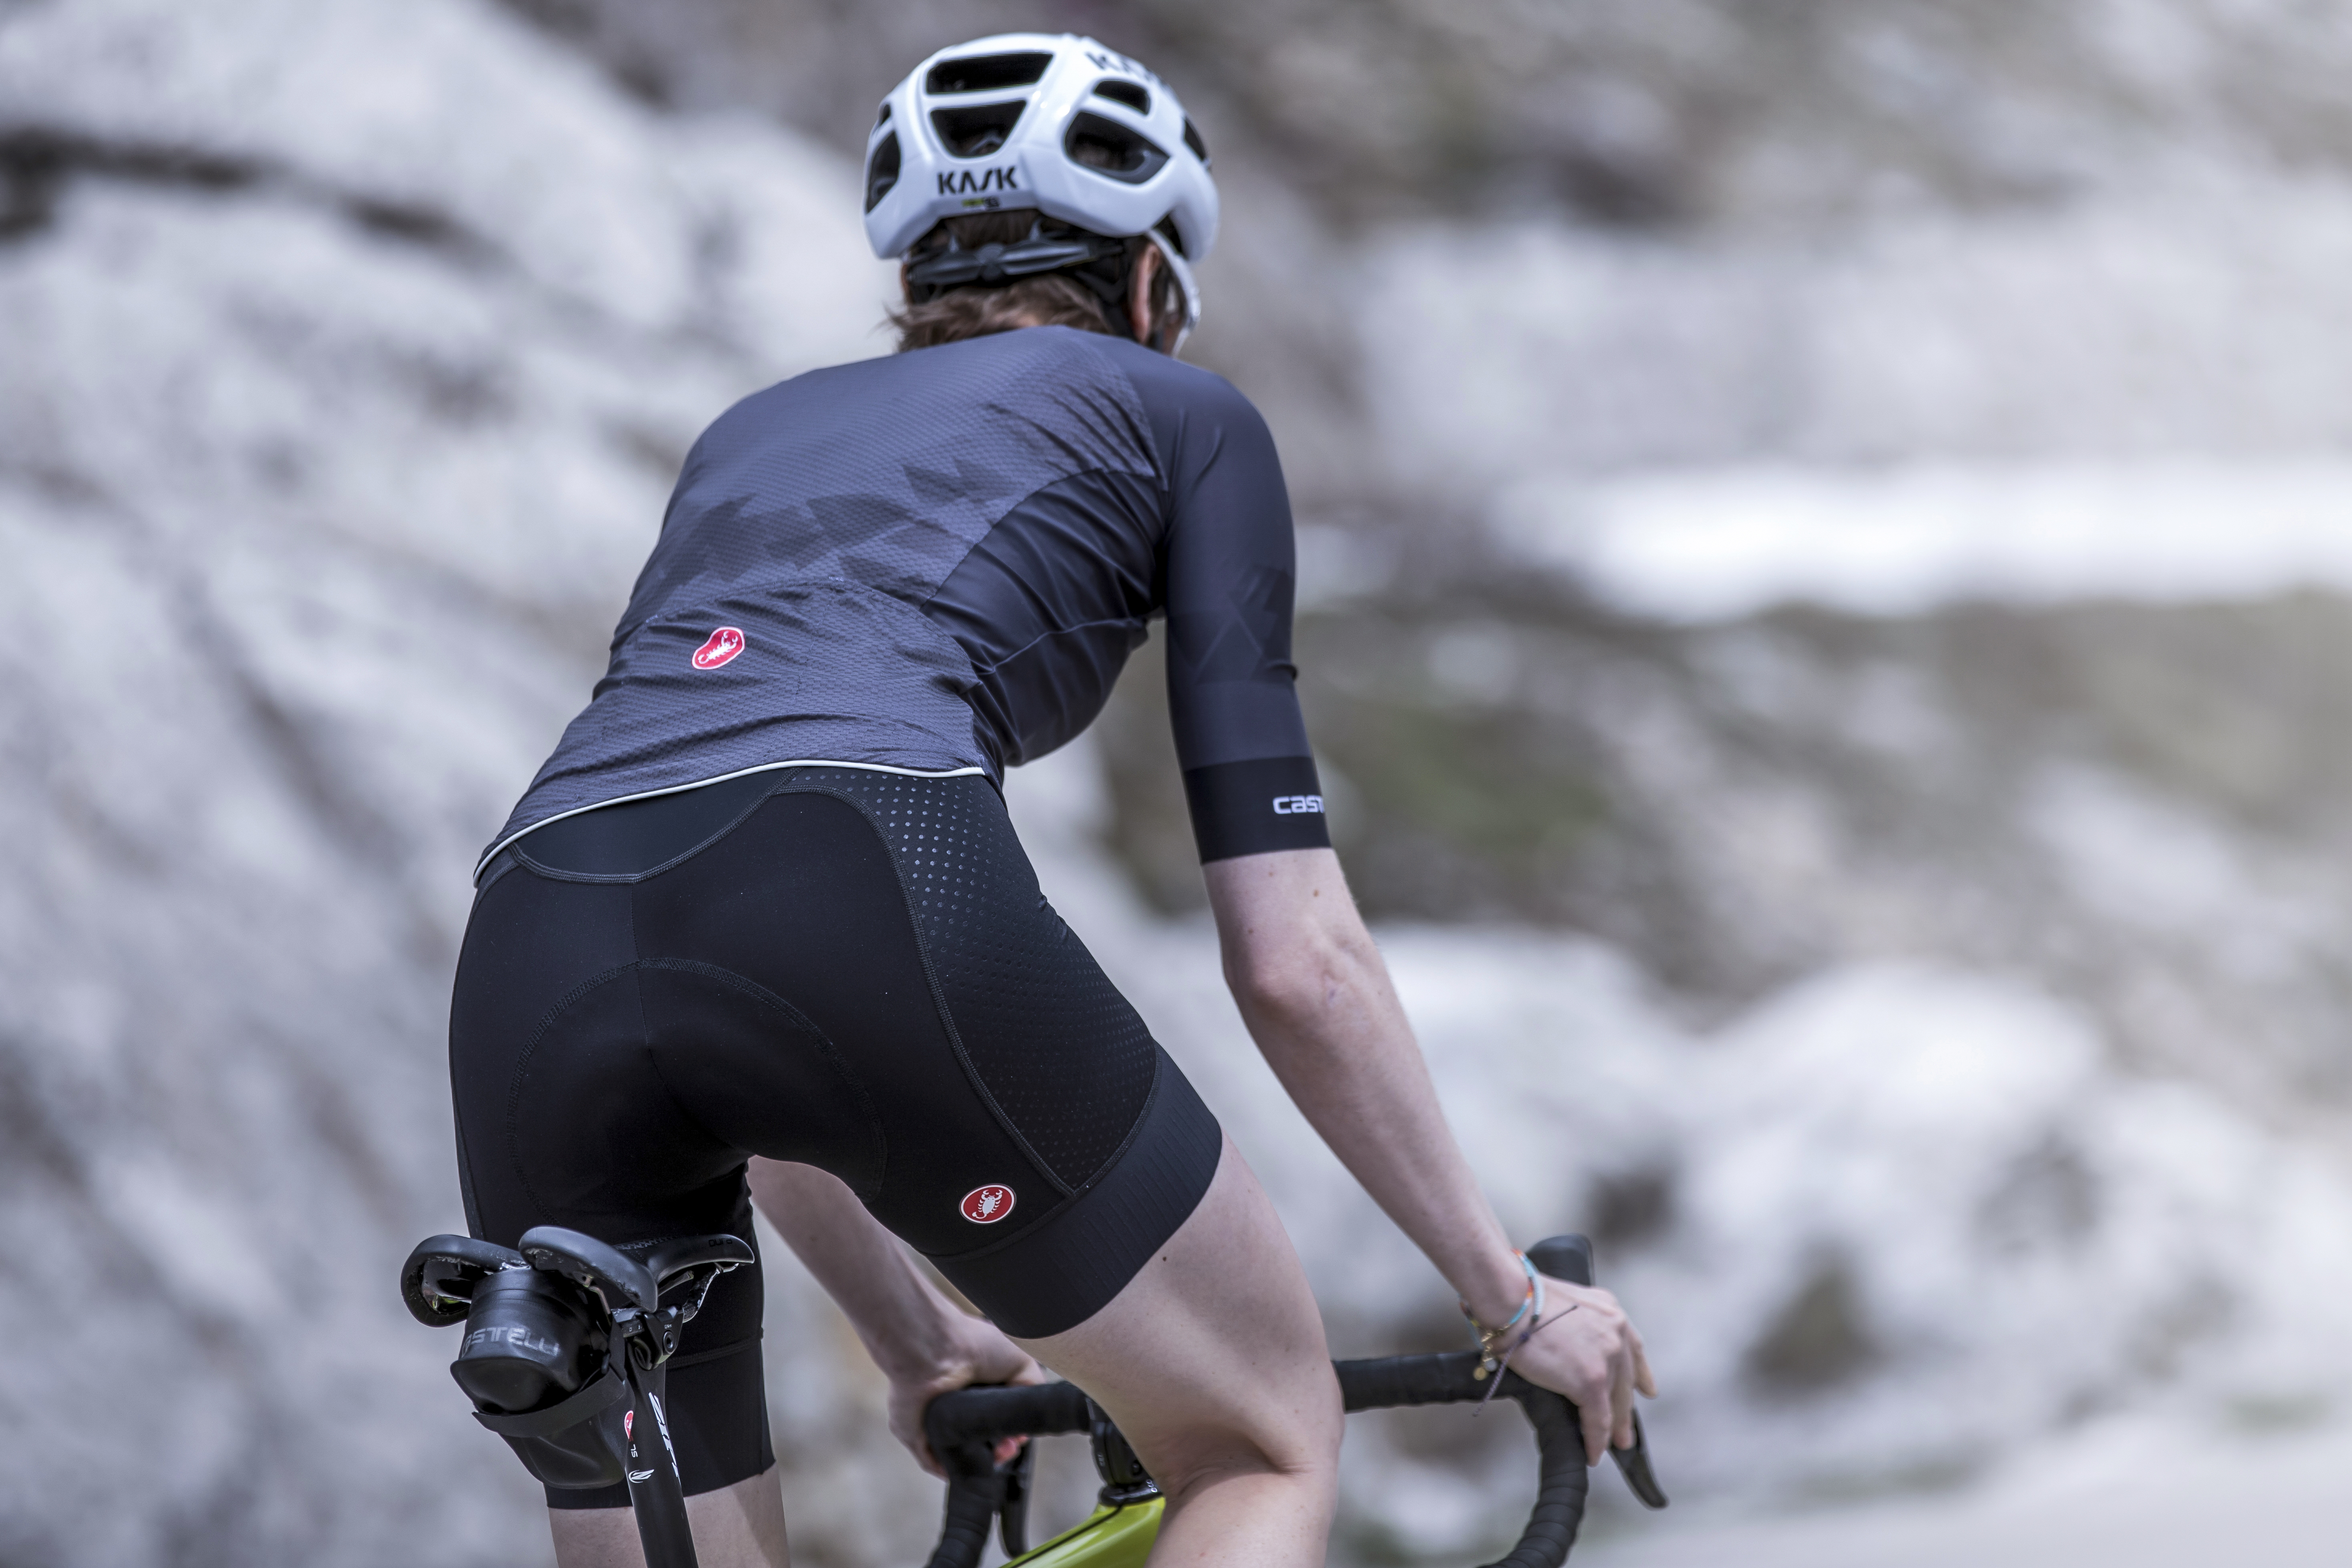 c1b35a17ffc ... and gives the same coverage as the bibs to ensure there are no gaps  between jersey and shorts. The Women s Free Aero Race 4 Short is priced at  £130.